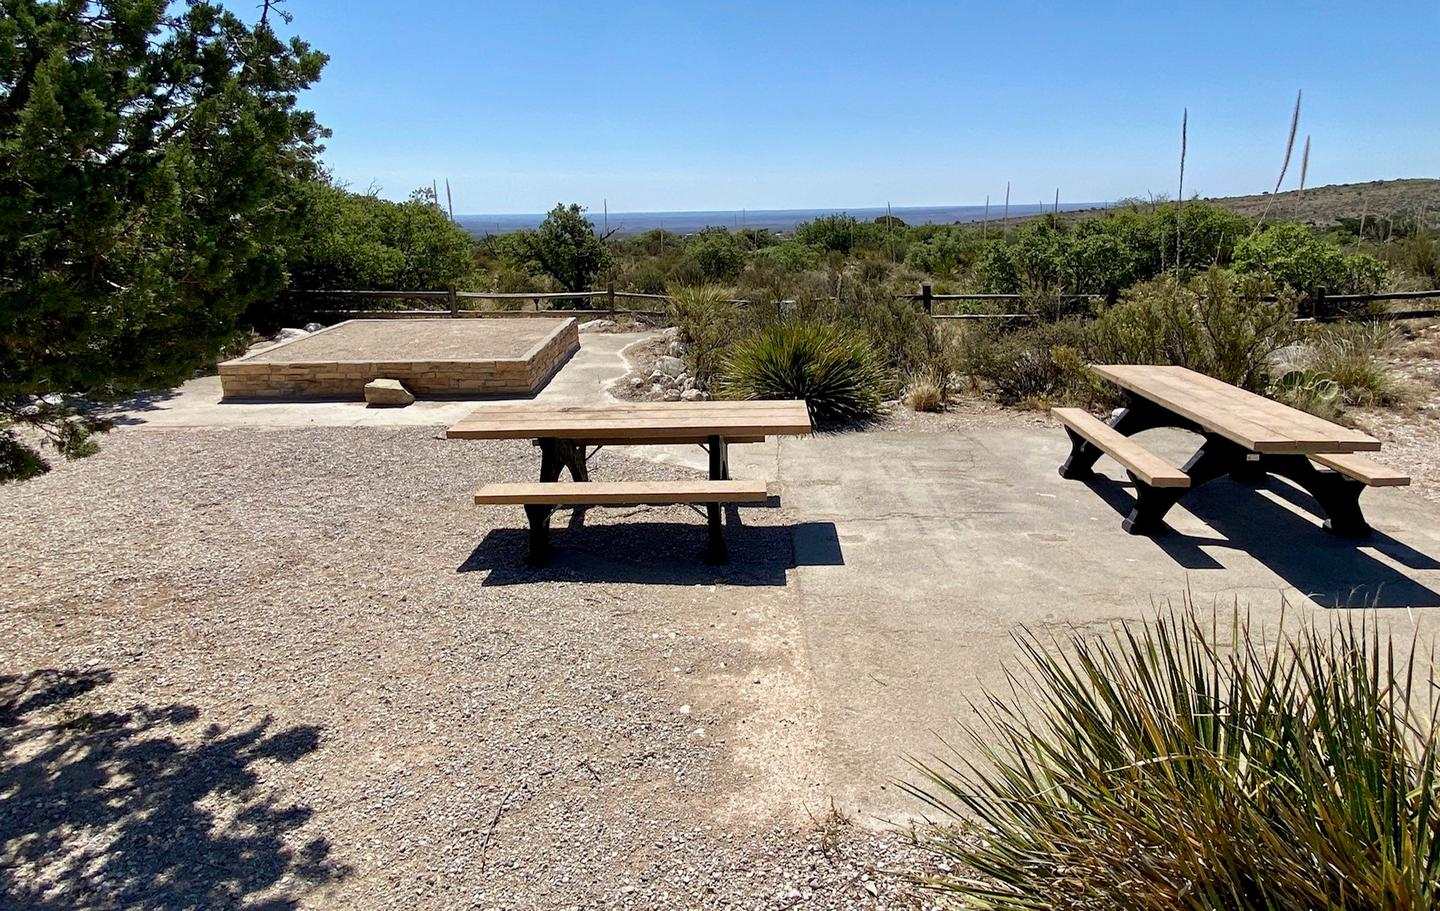 Group site #1 shown with accessible picnic table and tent pad.  An additional picnic table in an open area surrounded by desert vegetation.  View of the Permian Basin in background.Group site #1 shown with two accessible picnic tables and an elevated tent pad.  View of the Permian Basin in background.